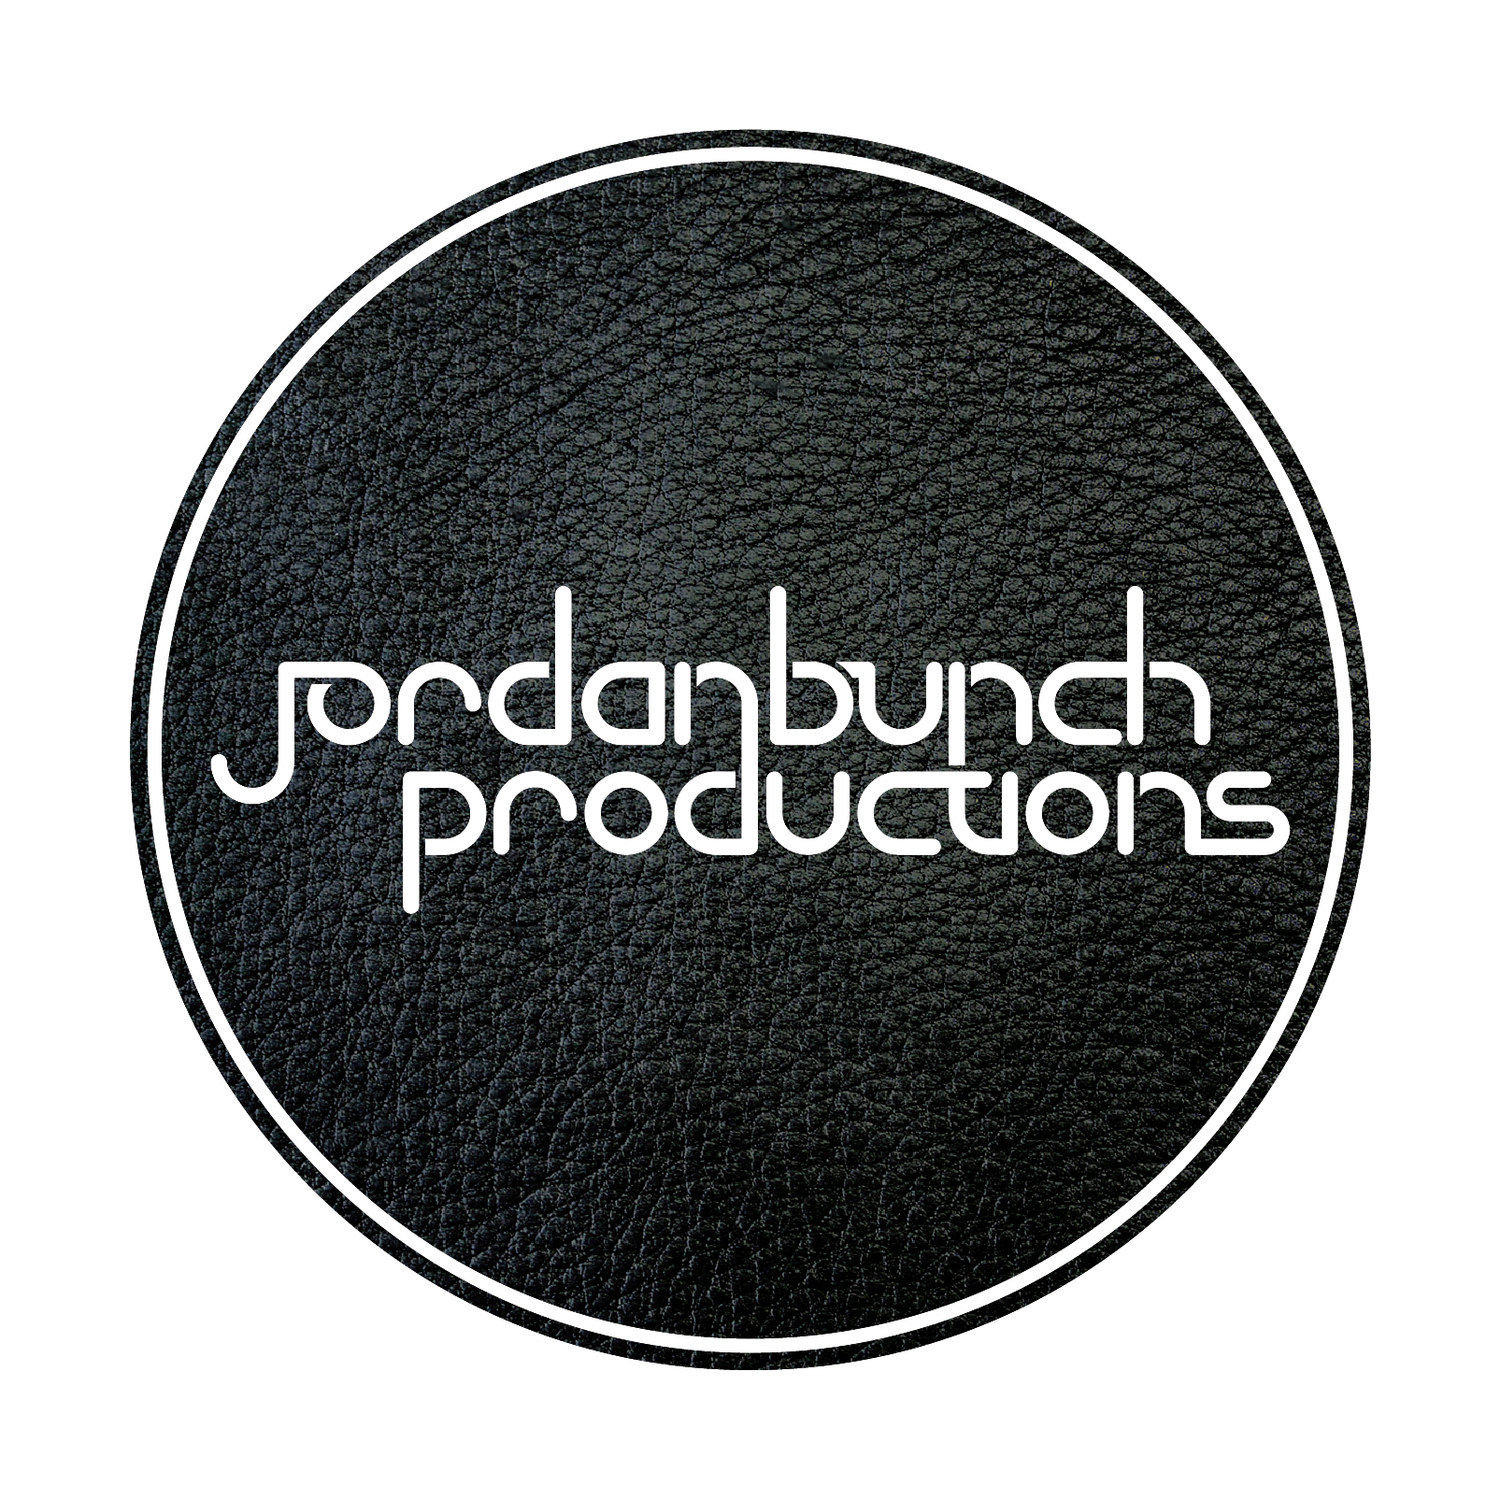 Jordan Bunch Productions | Austin, Texas Wedding & Commercial Photographer & Videographer